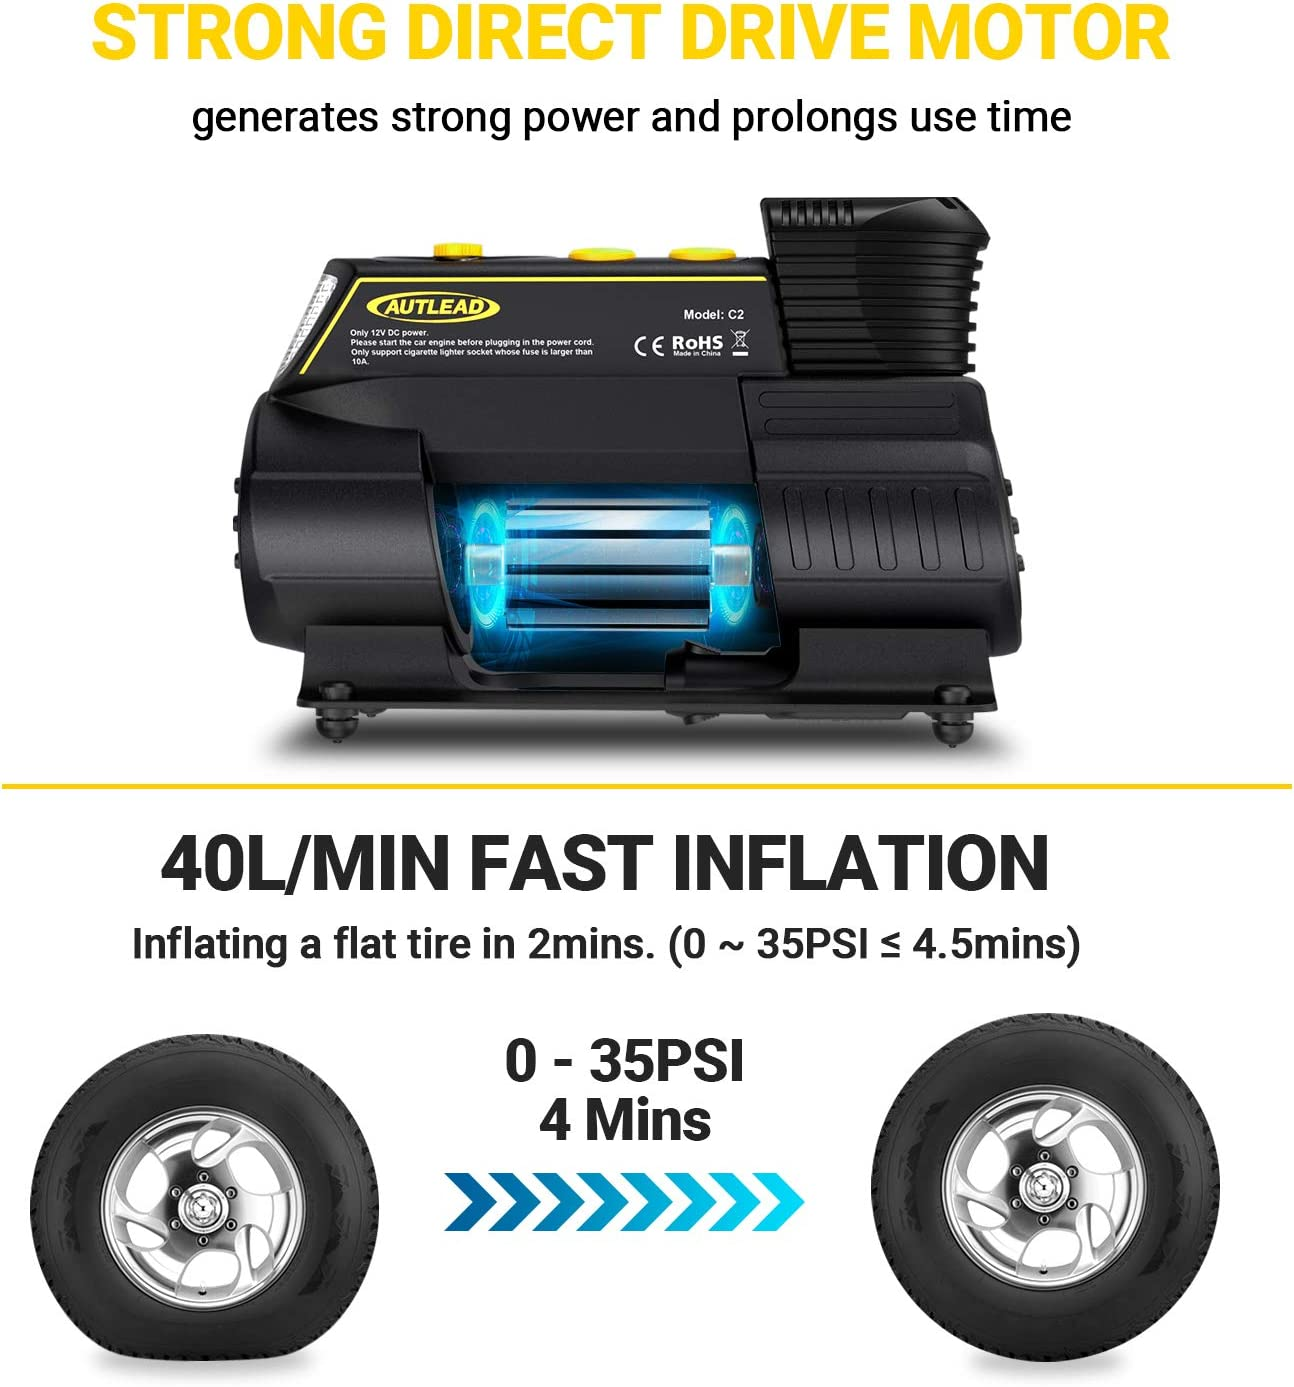 Emergency Light Bicycle Fast Inflating for Car Balloon Compact Tire Pump with Digital Gauge AUTLEAD C2 Tire Inflator Ball 12V Portable Air Compressor Quick Release Chuck